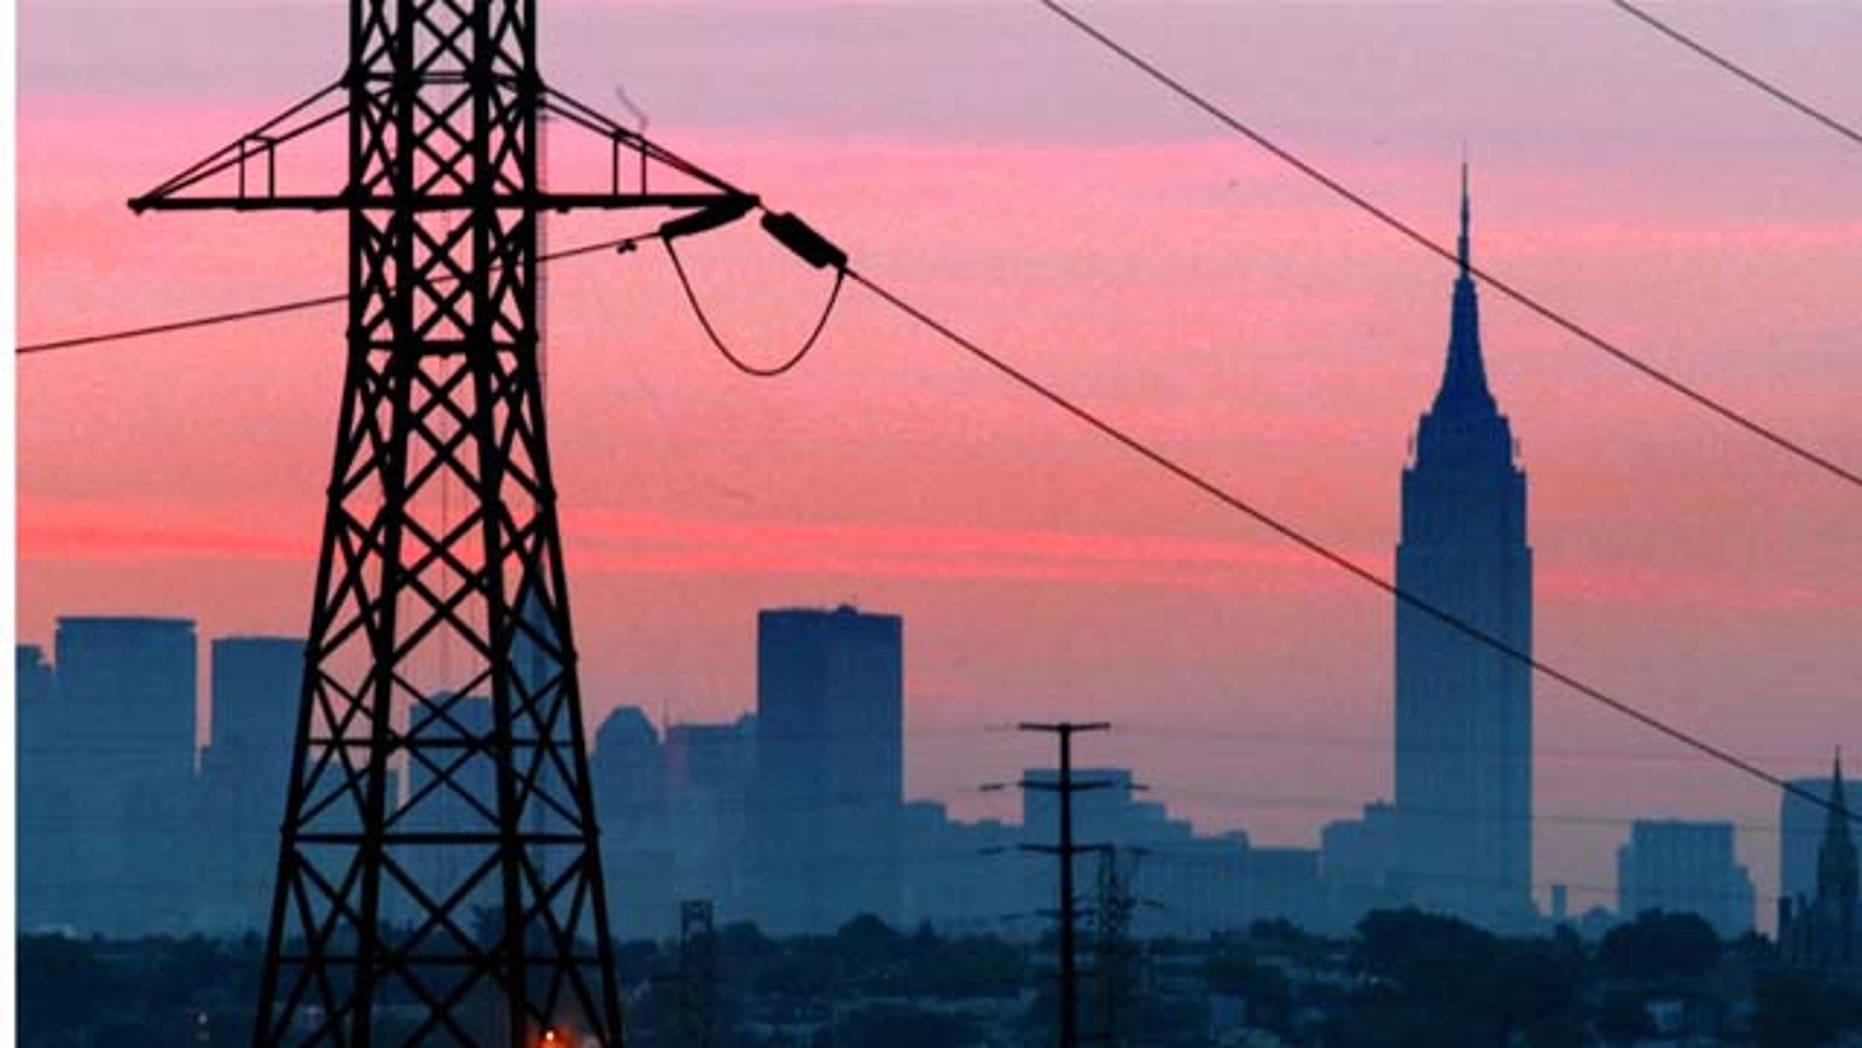 FILE - In a Friday, Aug. 15, 2003 file photo, the Empire State Building towers over the skyline of a blackout-darkened New York City just before dawn. Power lines from Jersey City, N.J., are in foreground.  (AP Photo)